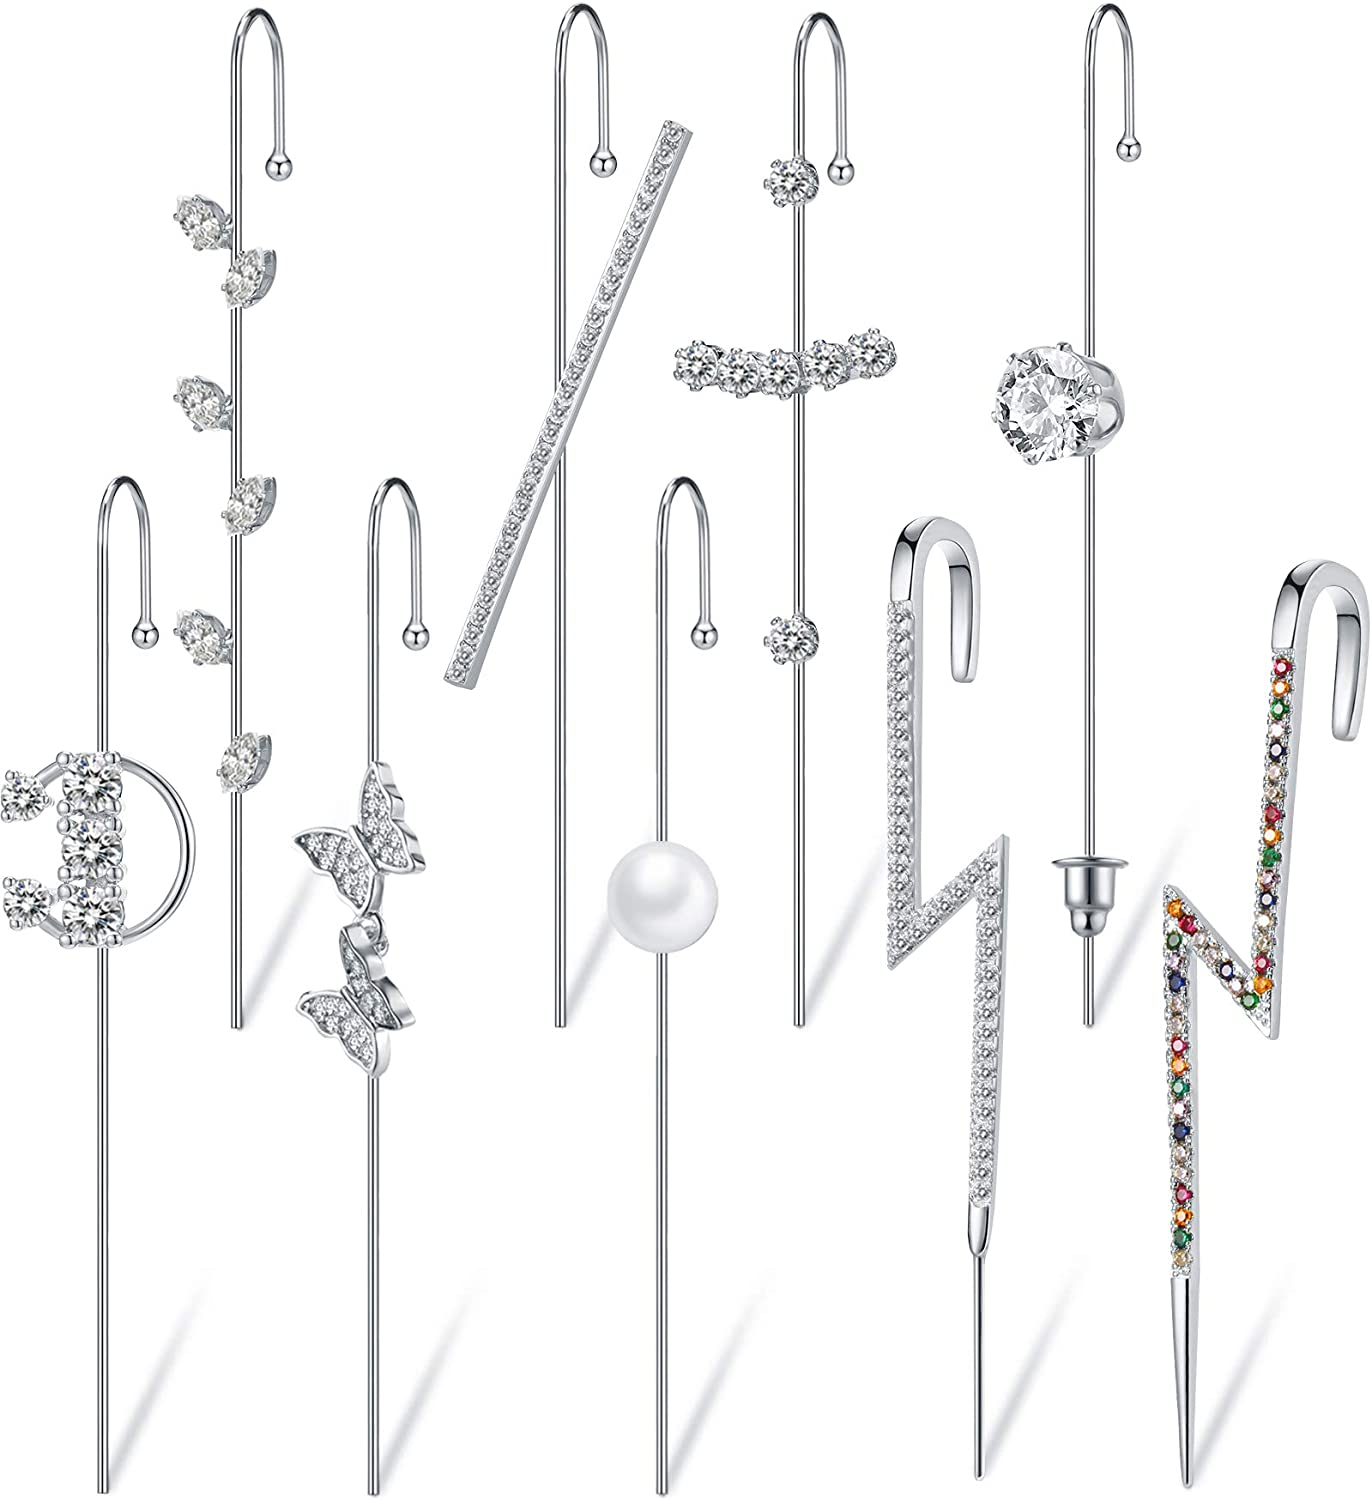 9 Pieces Limited time cheap sale Ear Cuffs Crawler Zirconia Cubic Hook Earrings Clim online shop